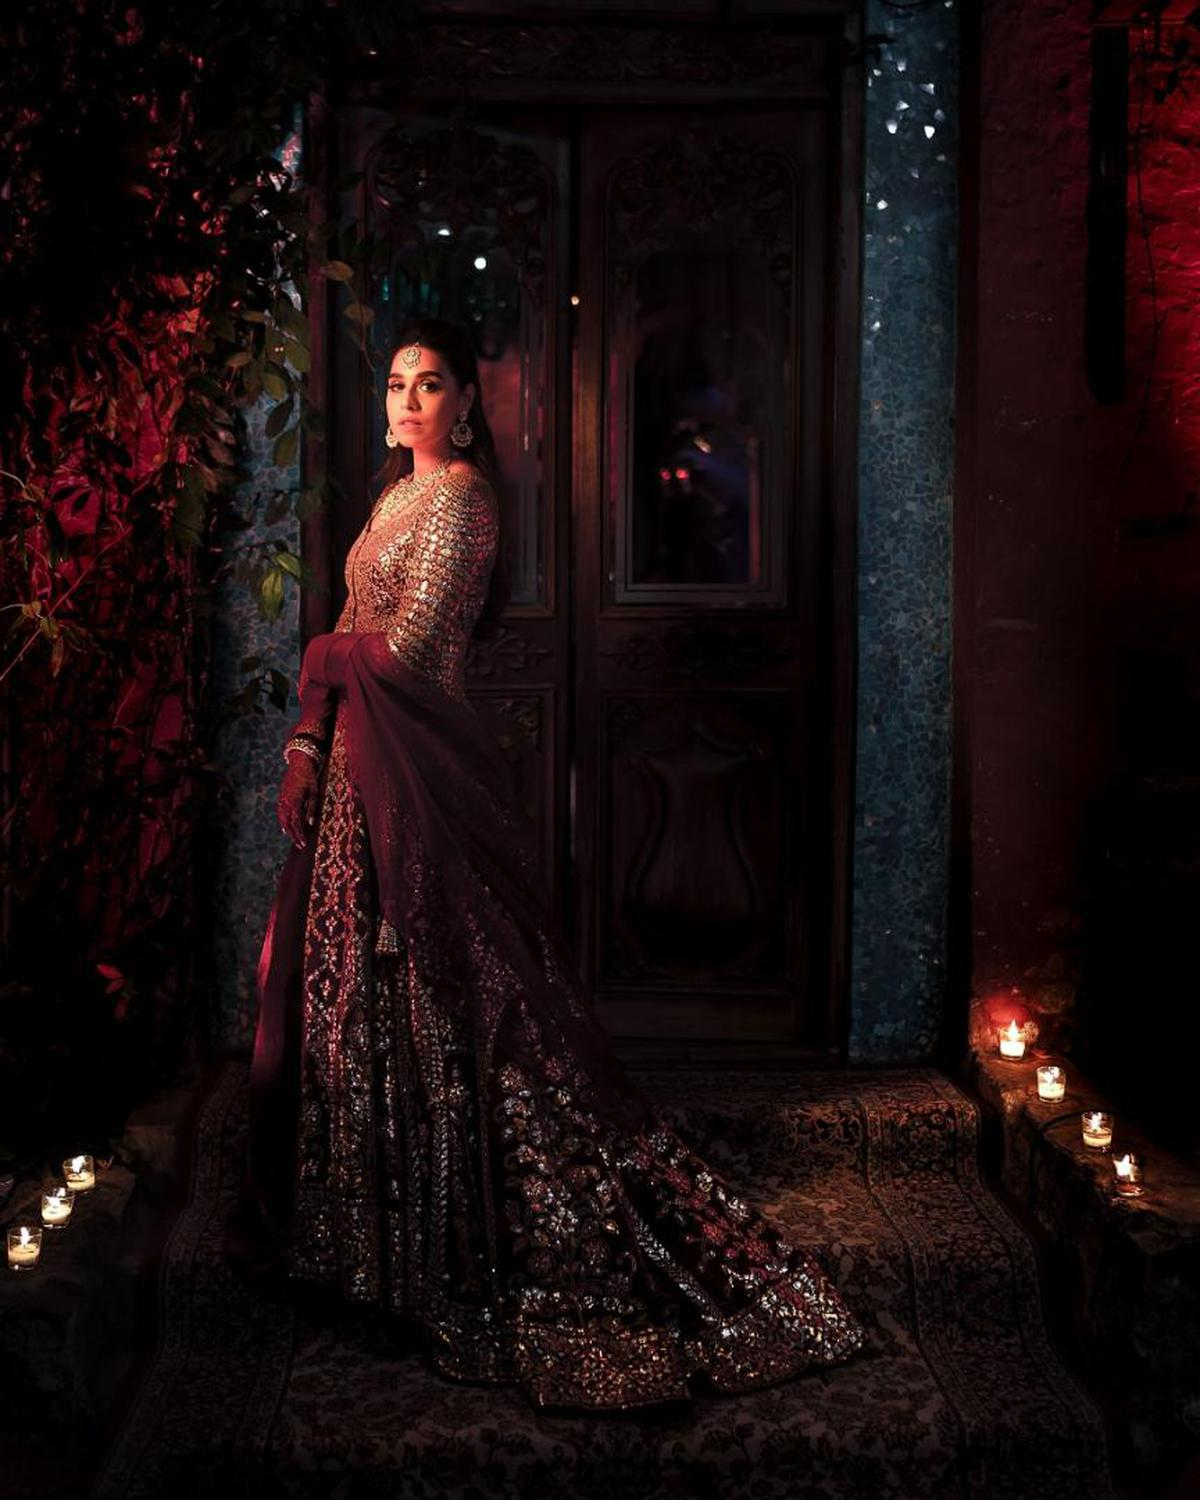 Image of Lady, Red, Dress, Darkness, Beauty, Light etc.